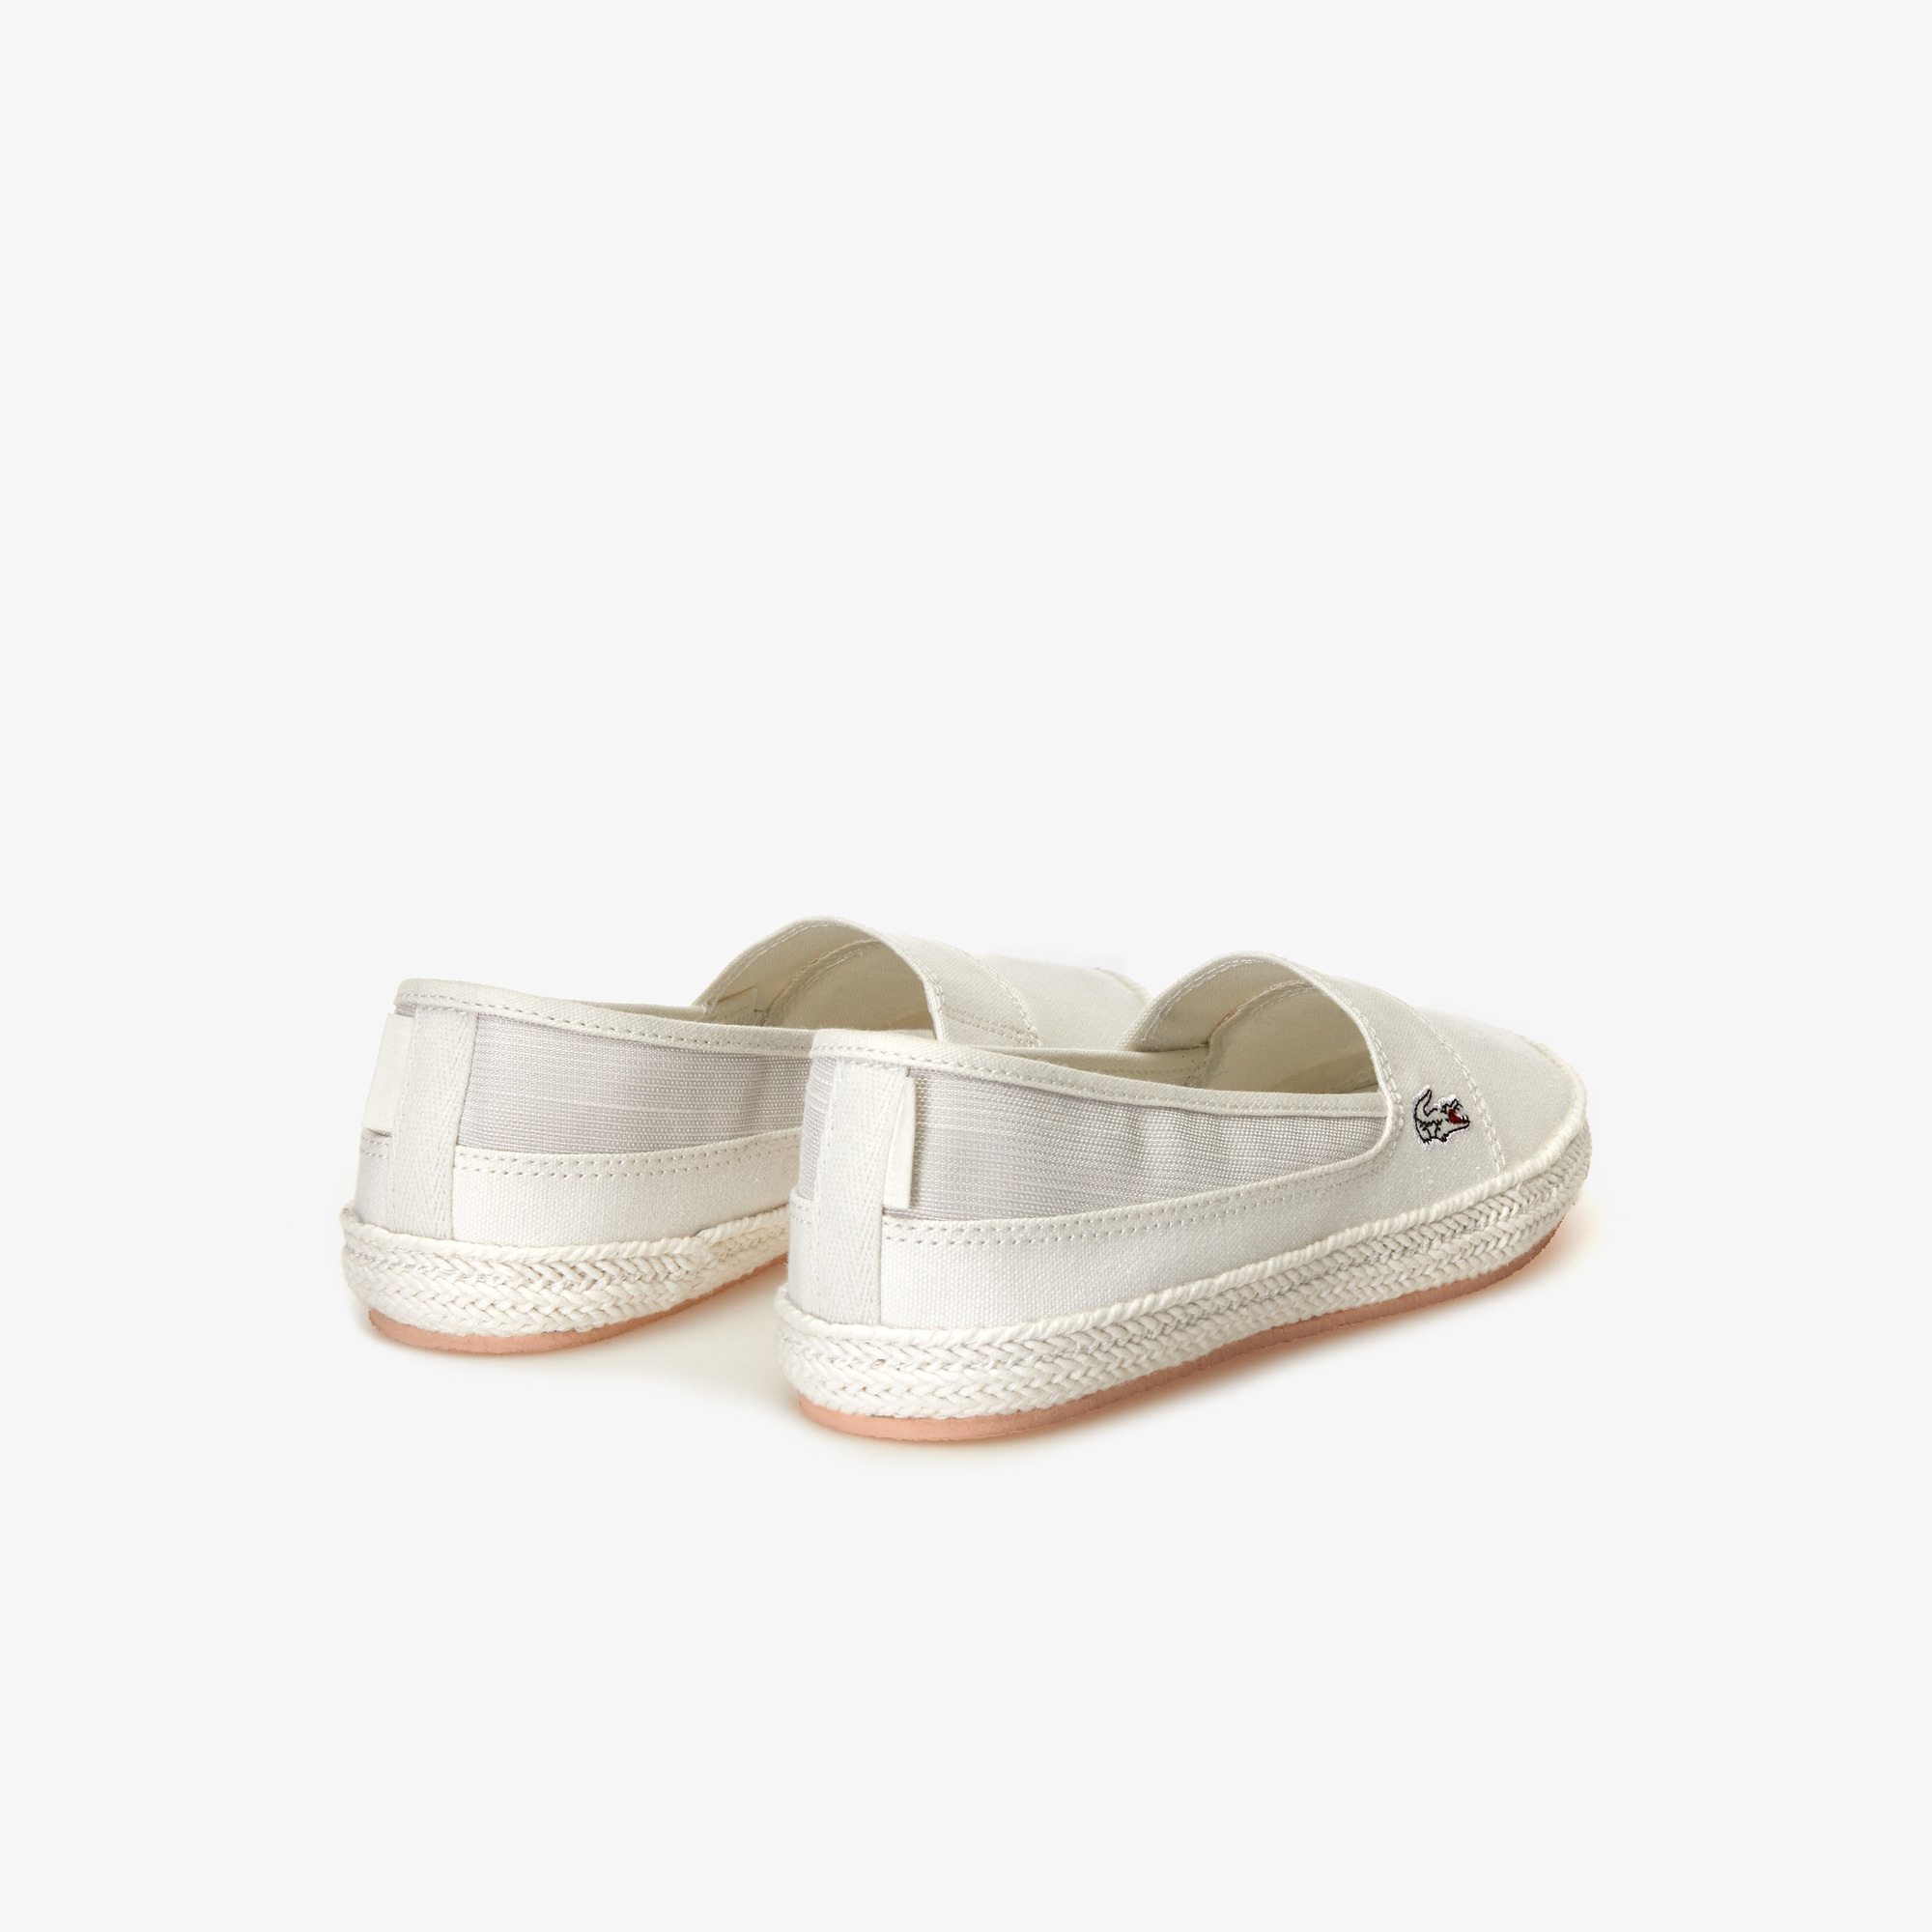 fd5c2e88f0 Women's Marice Canvas and Textile Slip-ons   LACOSTE